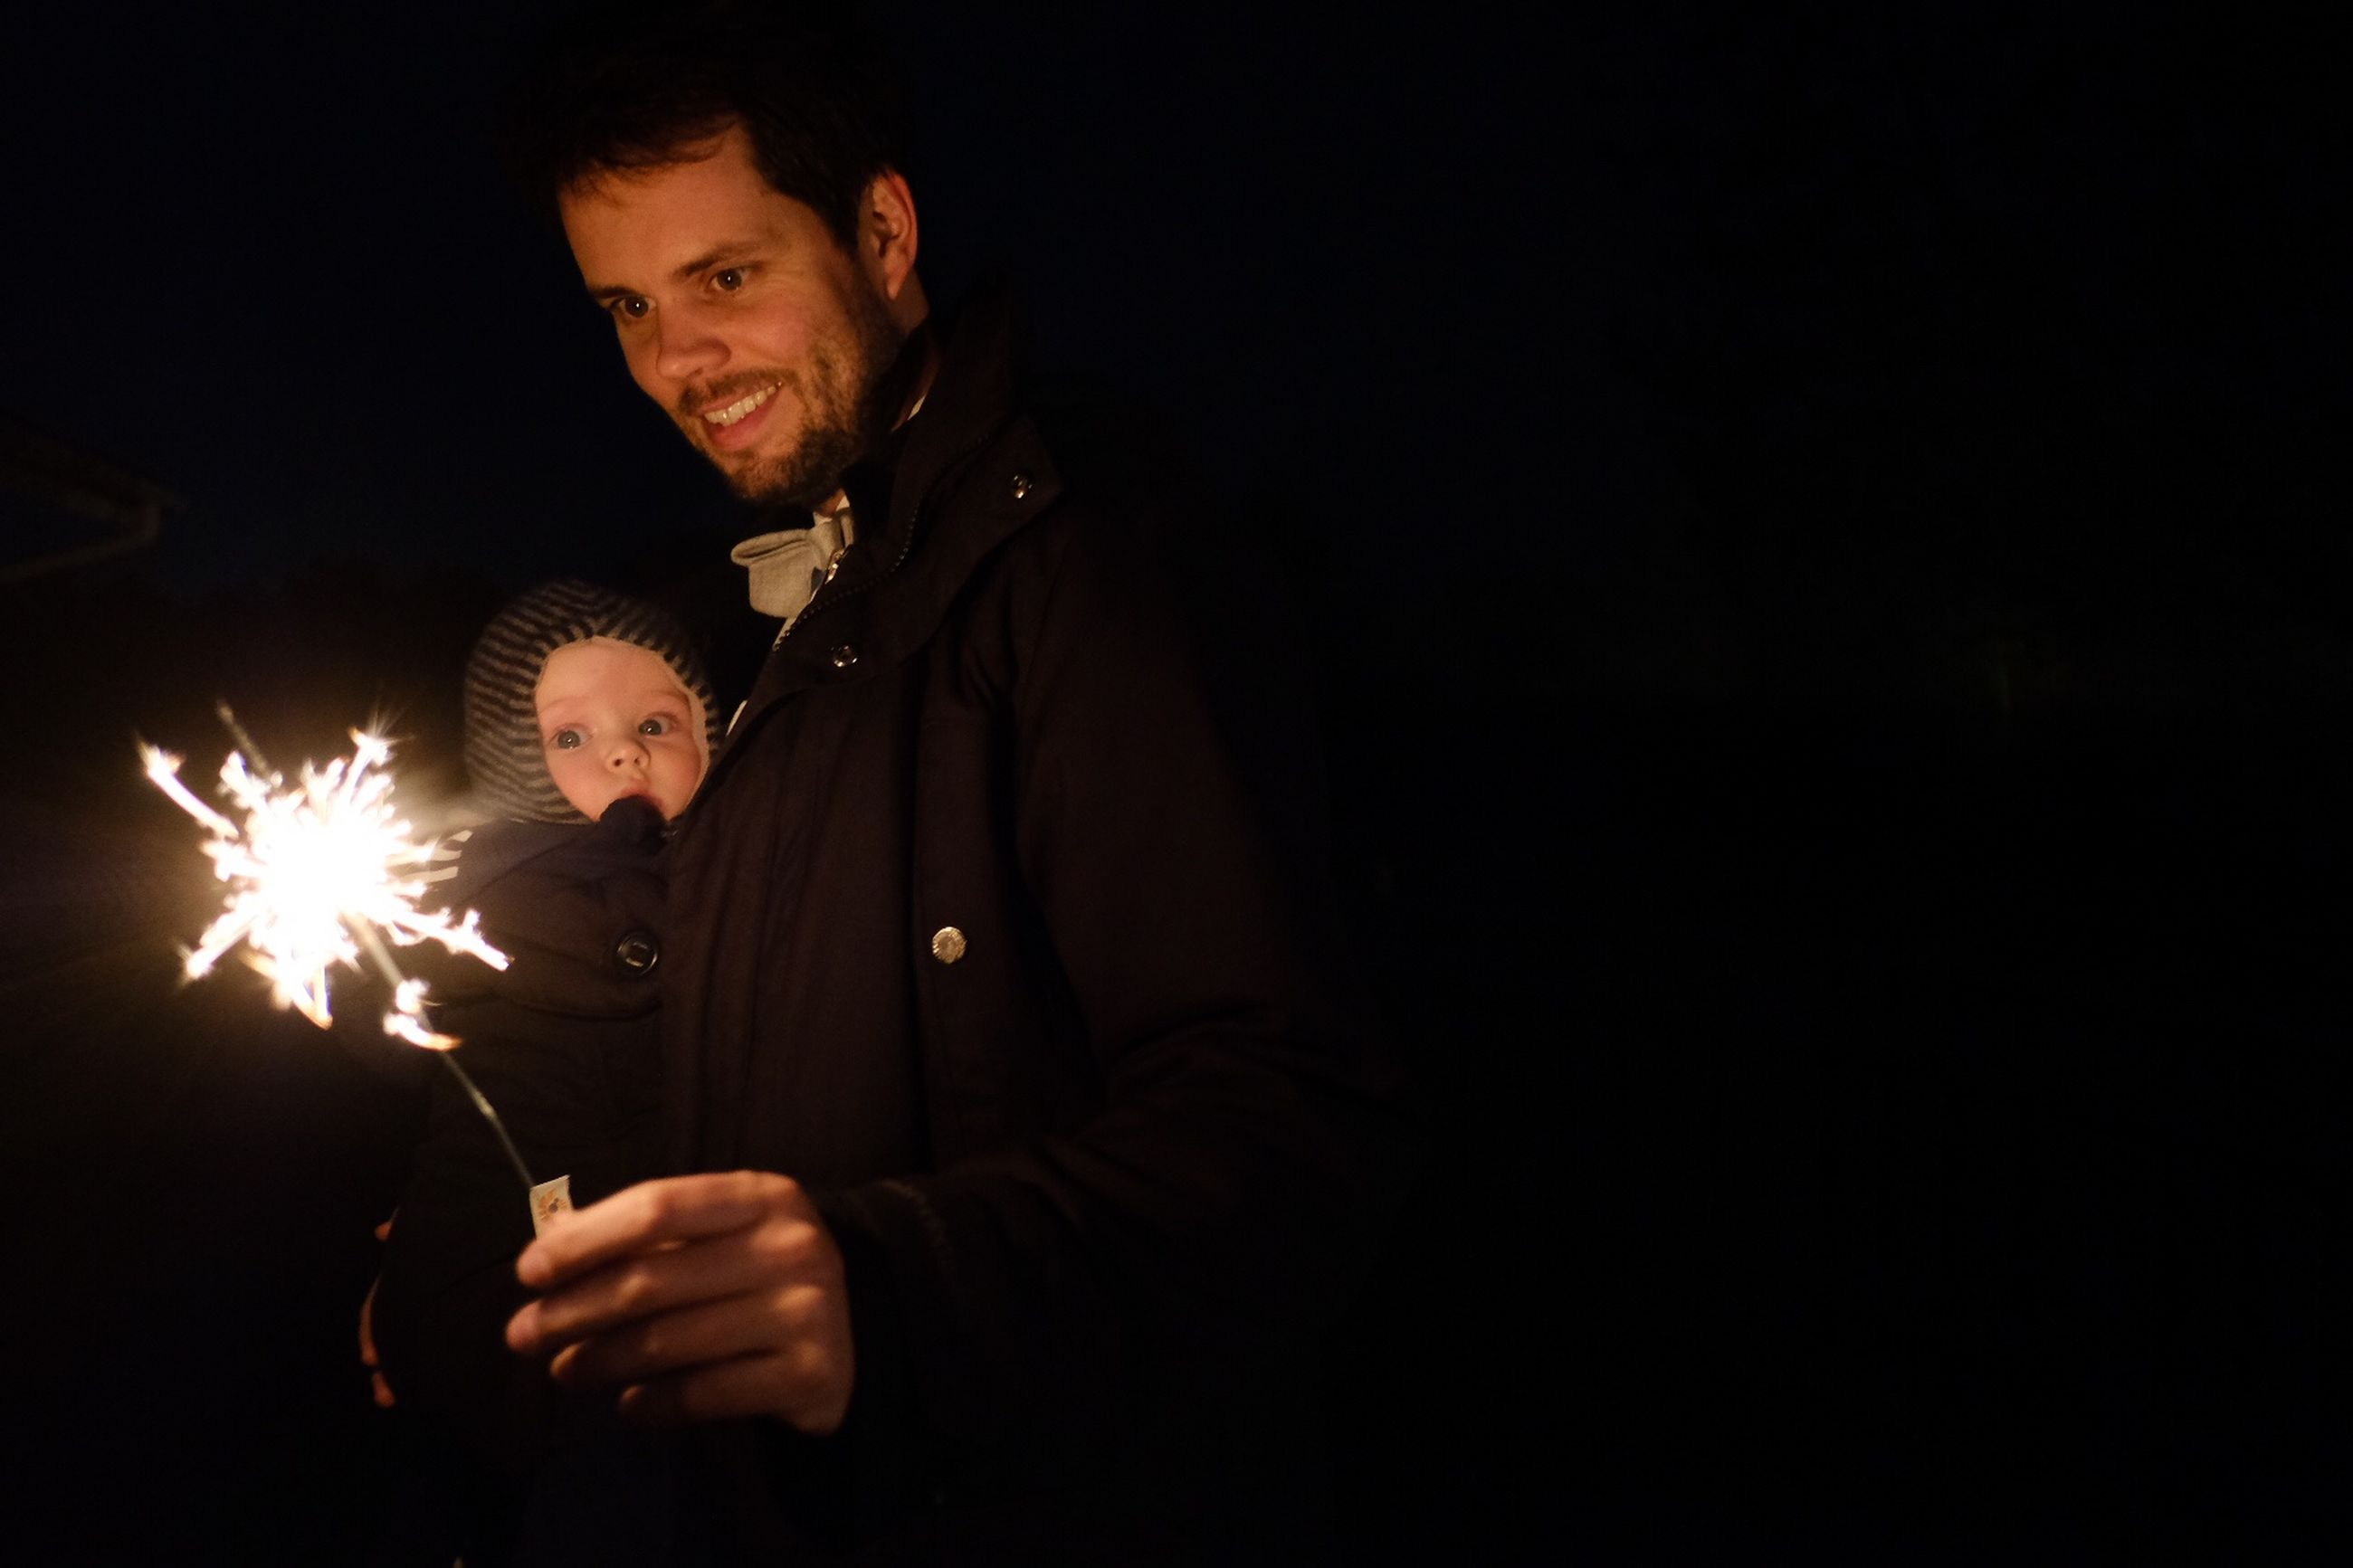 men, illuminated, glowing, night, males, two people, sparkler, burning, holding, celebration, mid adult men, lifestyles, real people, mid adult, copy space, portrait, dark, young adult, leisure activity, black background, sparks, firework